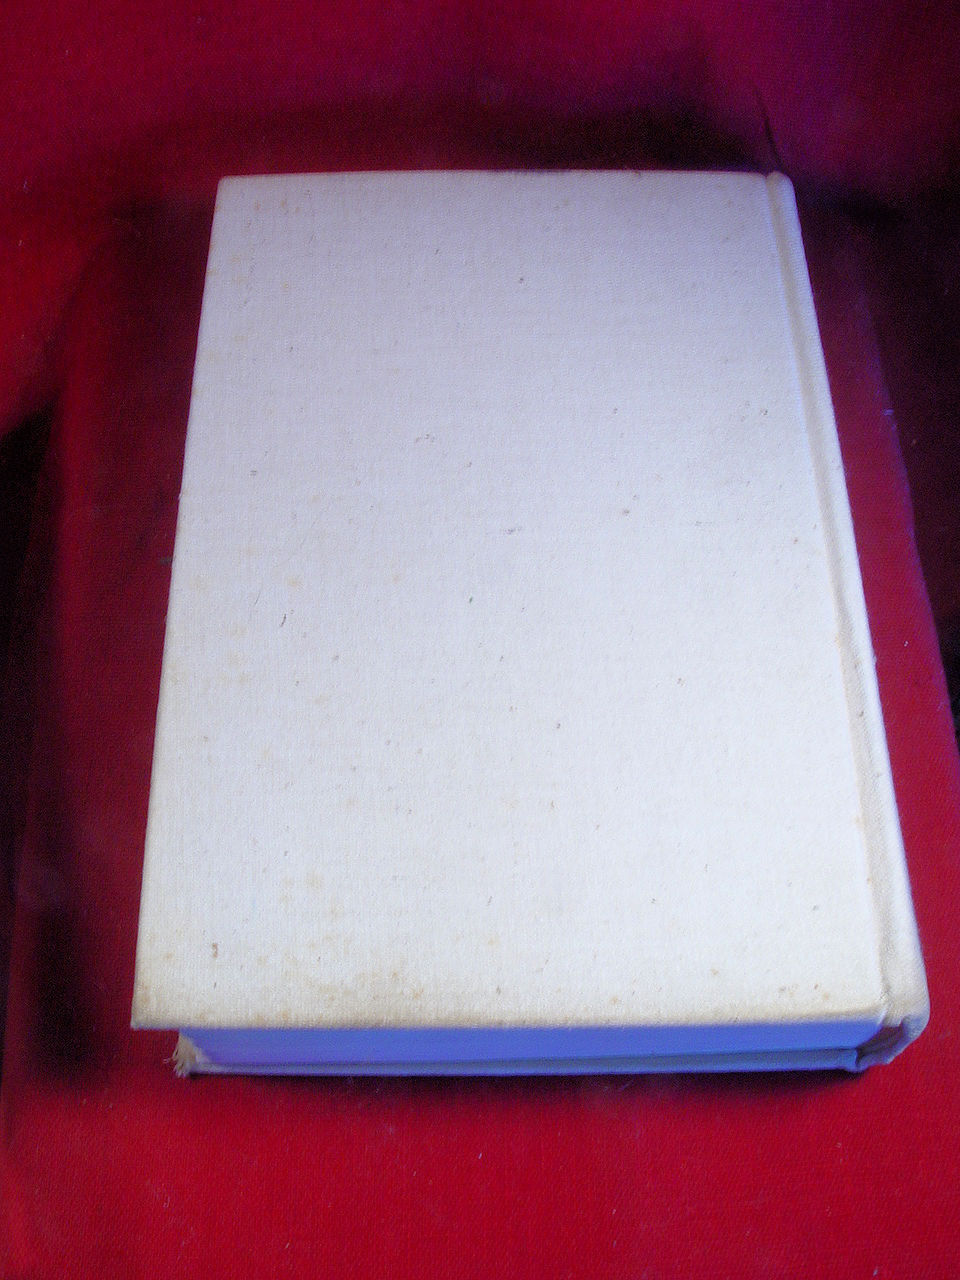 Hawaii - James A. Michener 1st edition in dust jacket